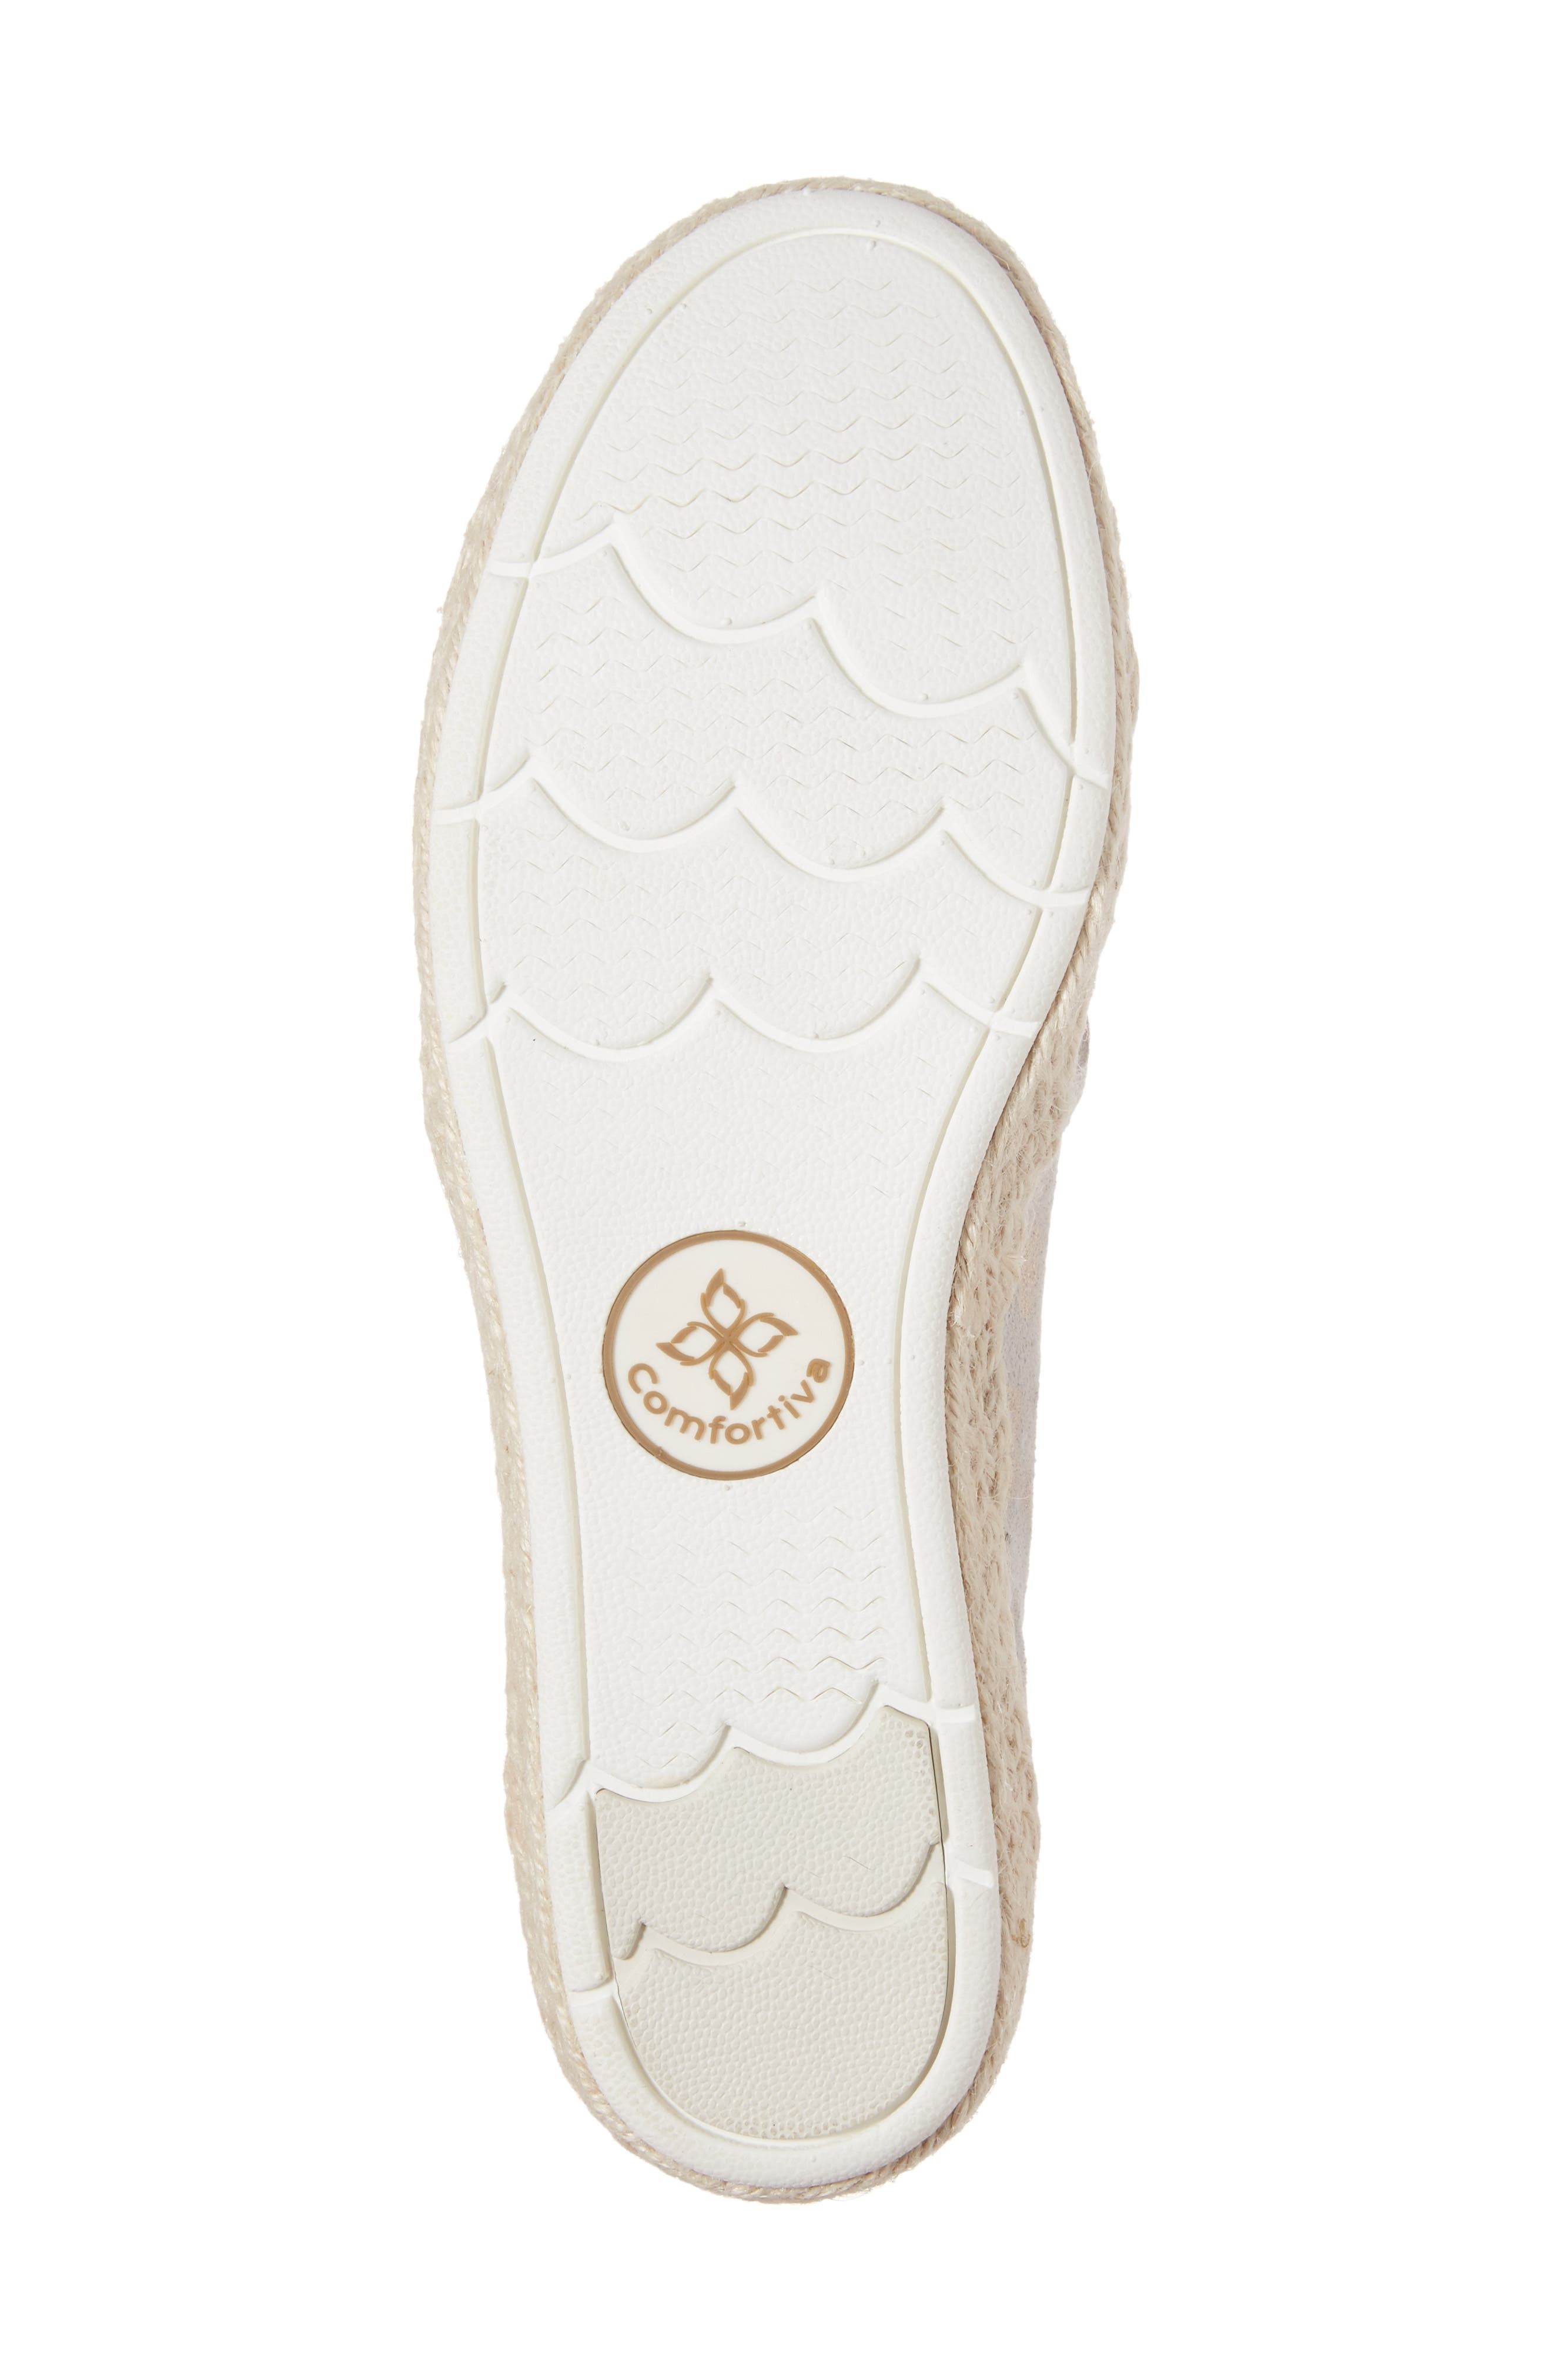 Sheridan Espadrille Flat,                             Alternate thumbnail 6, color,                             IVORY SUEDE